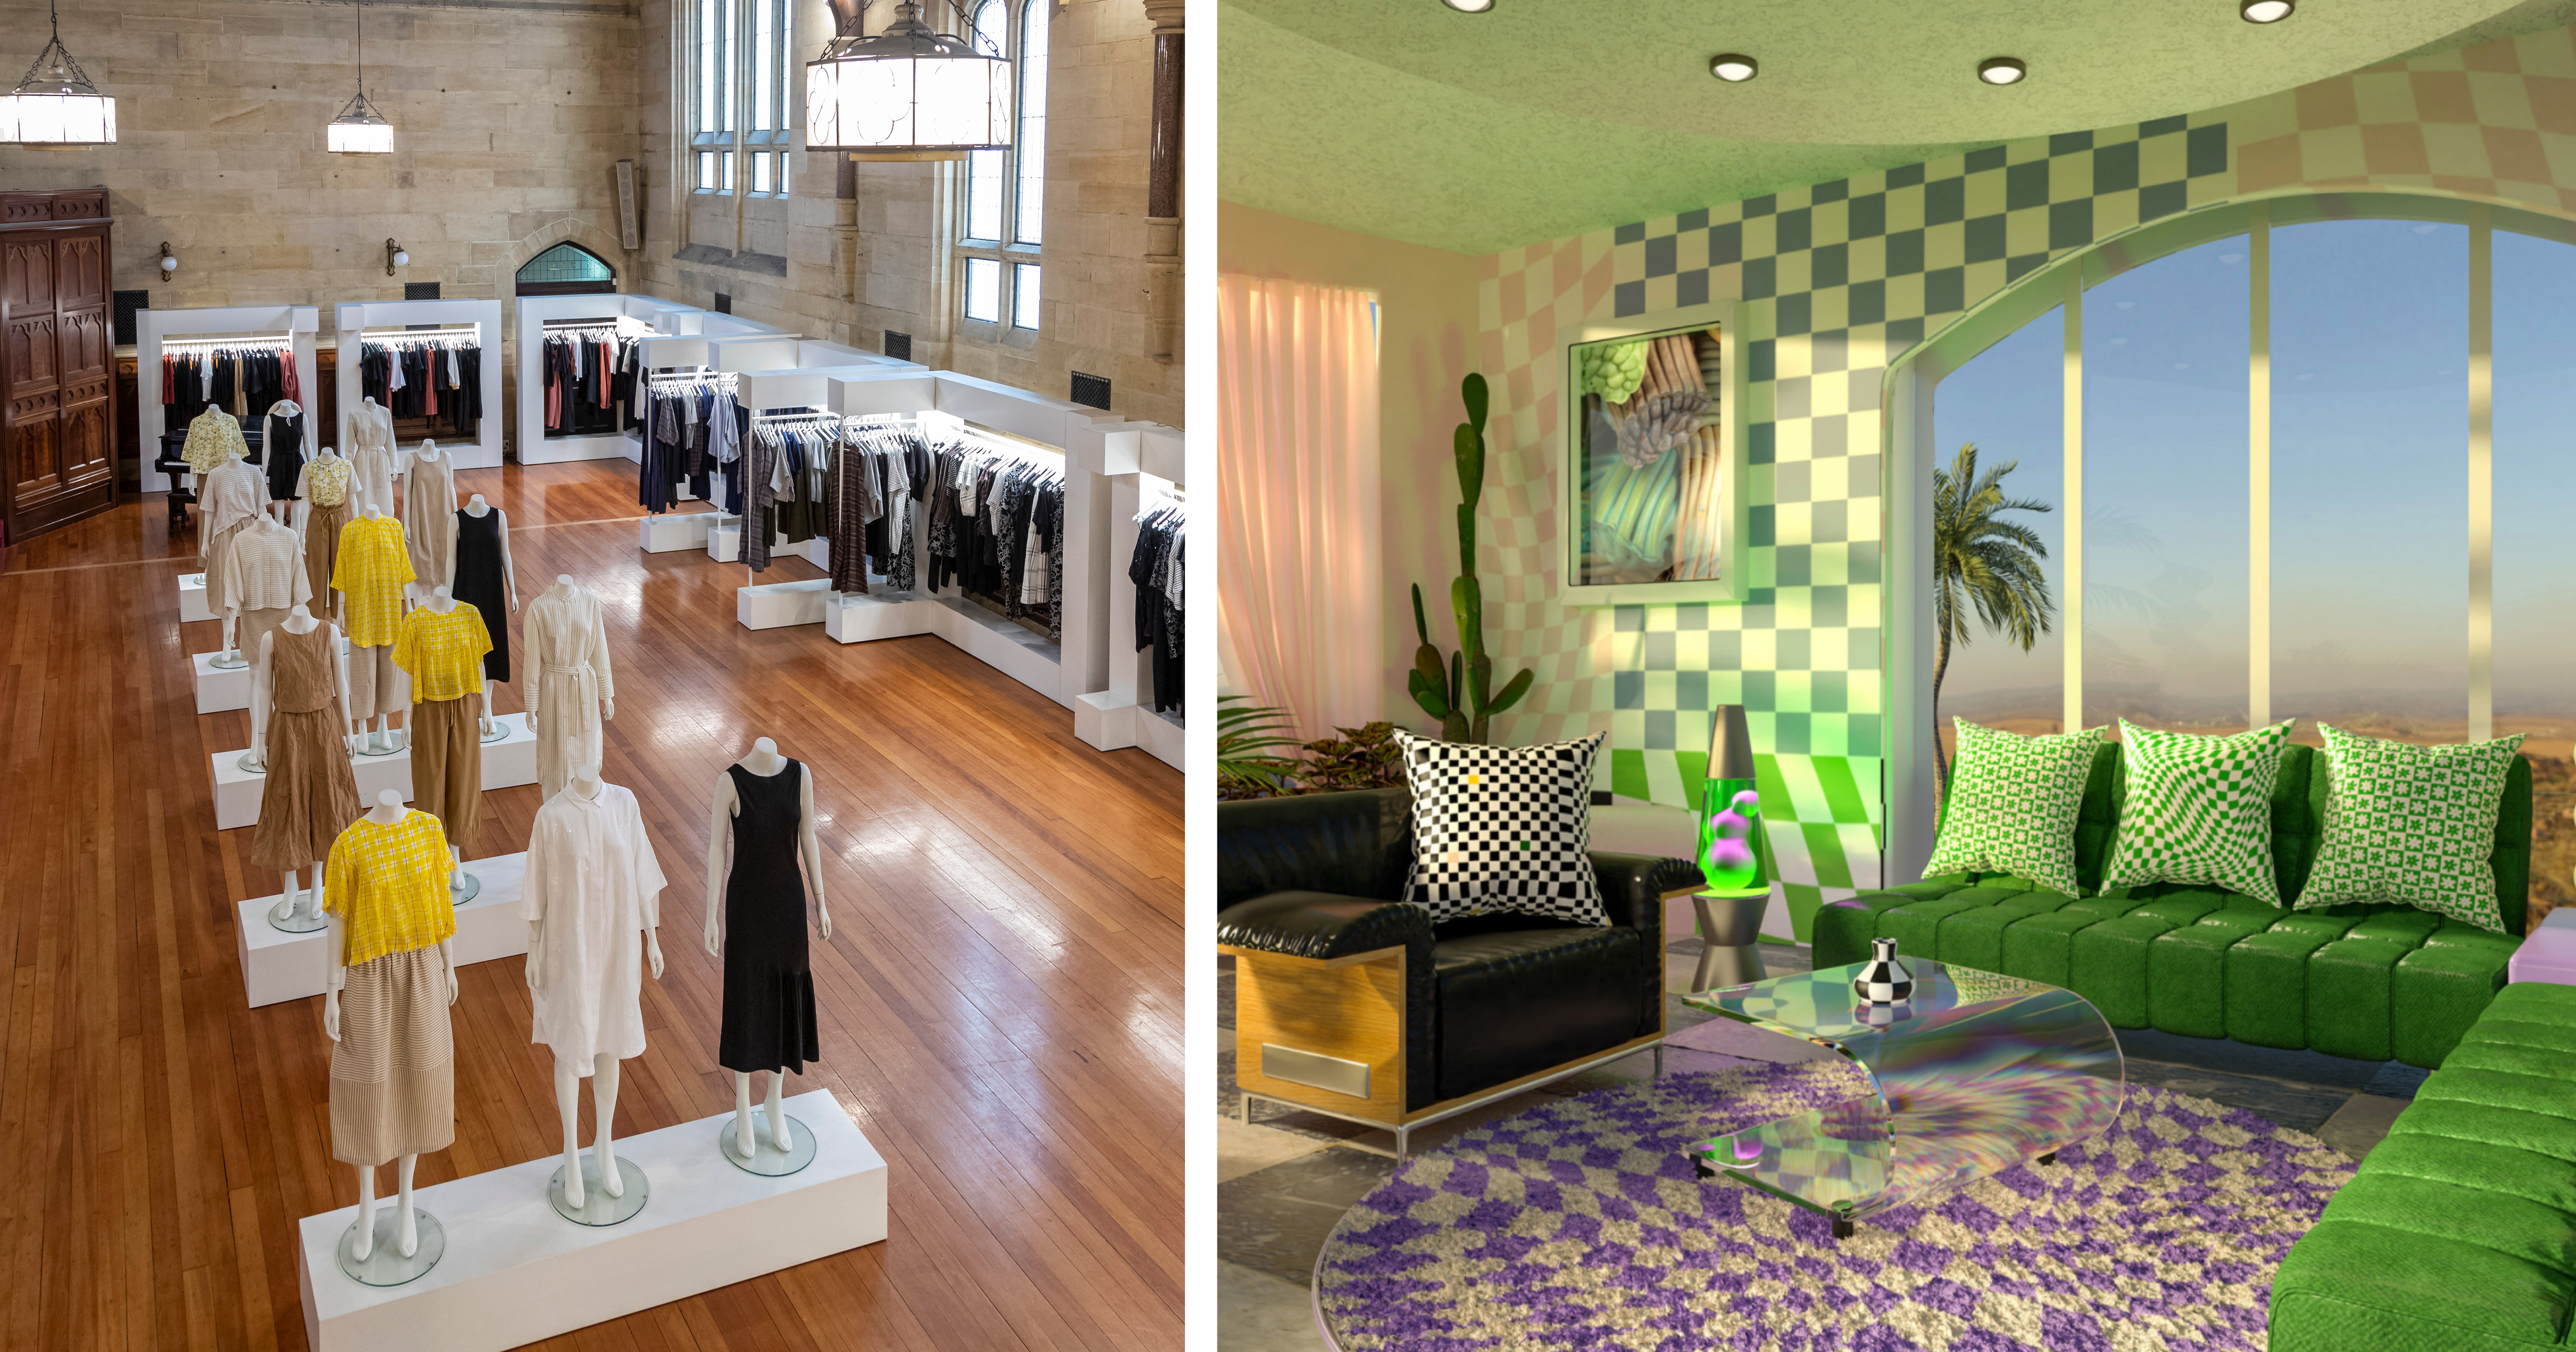 Left - Melbourne-based independent clothing label, Alpha 60, sets up shop in an ex-community church space. Right - Jolie Laide ('beautiful ugly') is a maximalist homeware brand with a boutique, community feel.